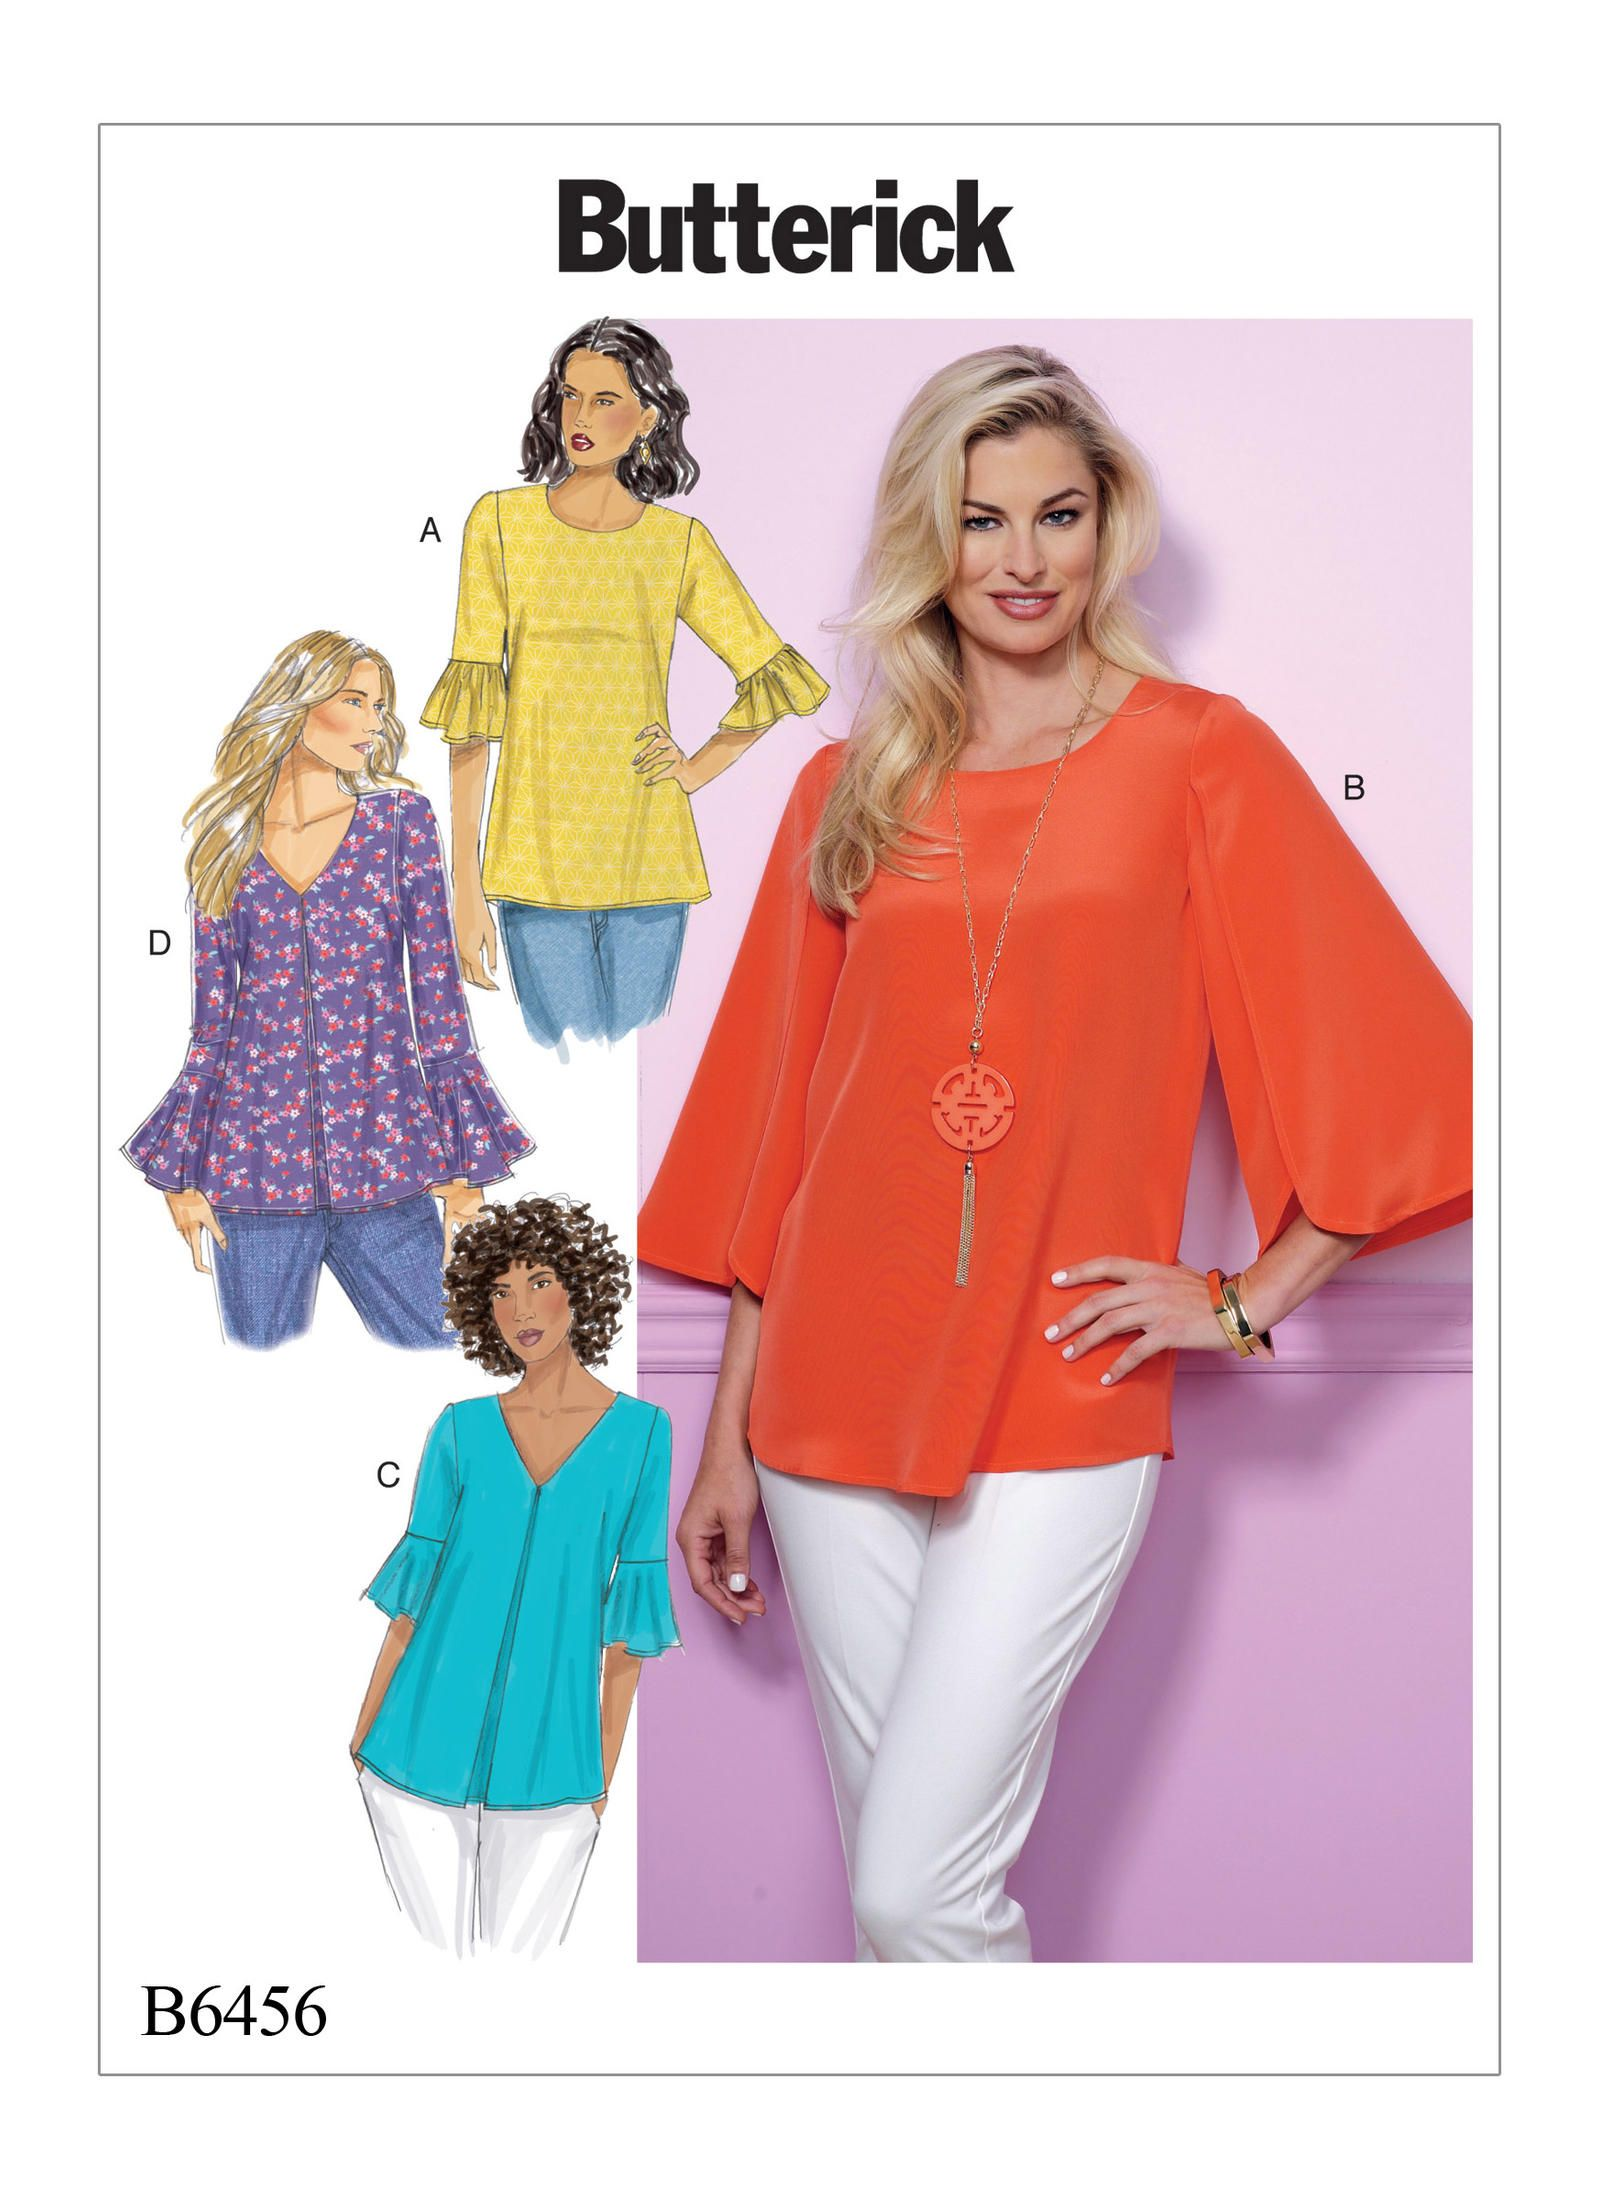 ac9484e9 Butterick 6456 Misses' Tulip or Ruffle Sleeve Tops | Sew It Up ...